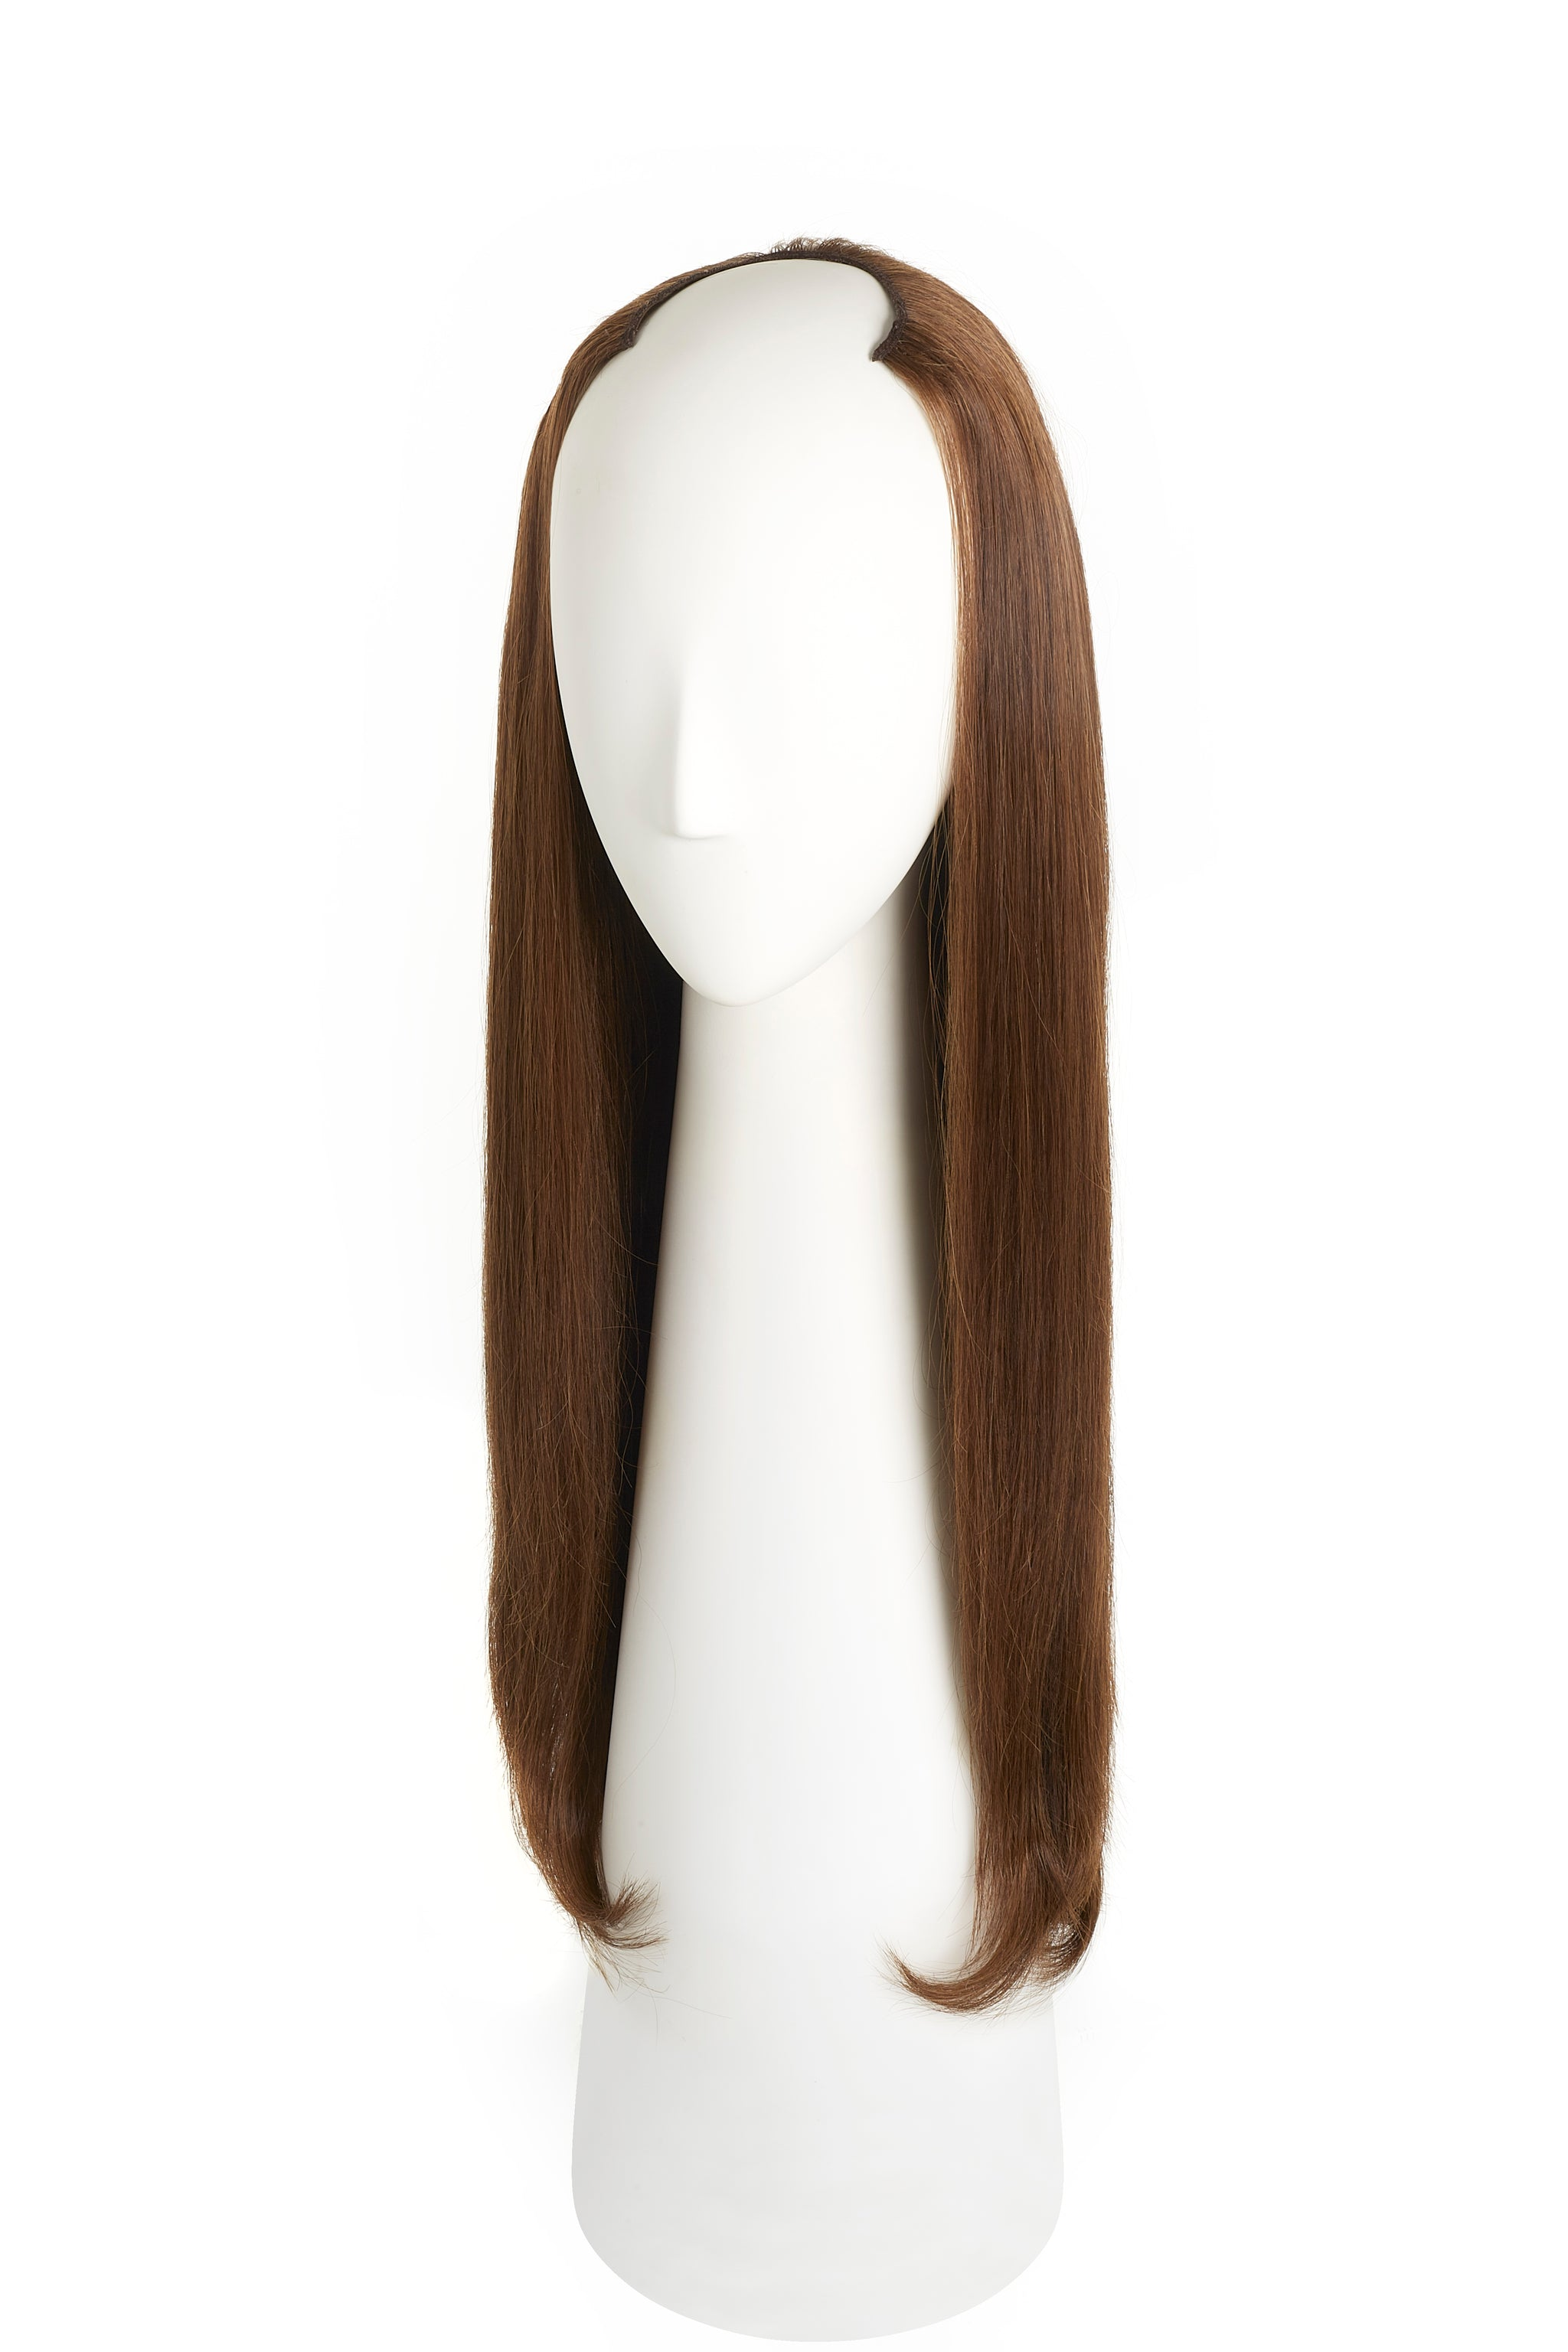 Chocolate Brown (3) U-Part Wig